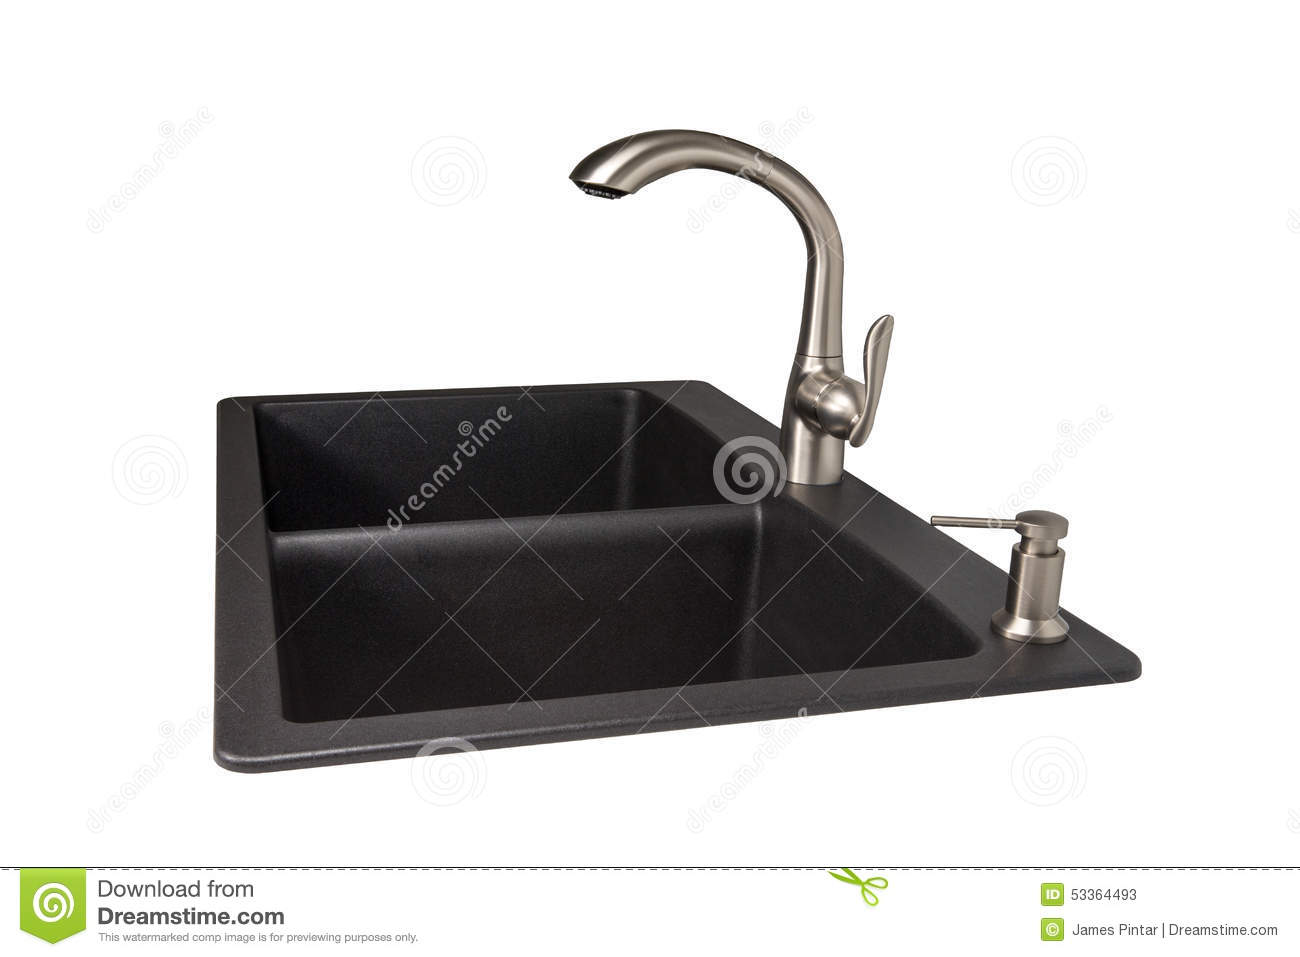 Granite Sink With Brushed Stainless Faucet Stock Image Image Of Silgranit Modern 53364493